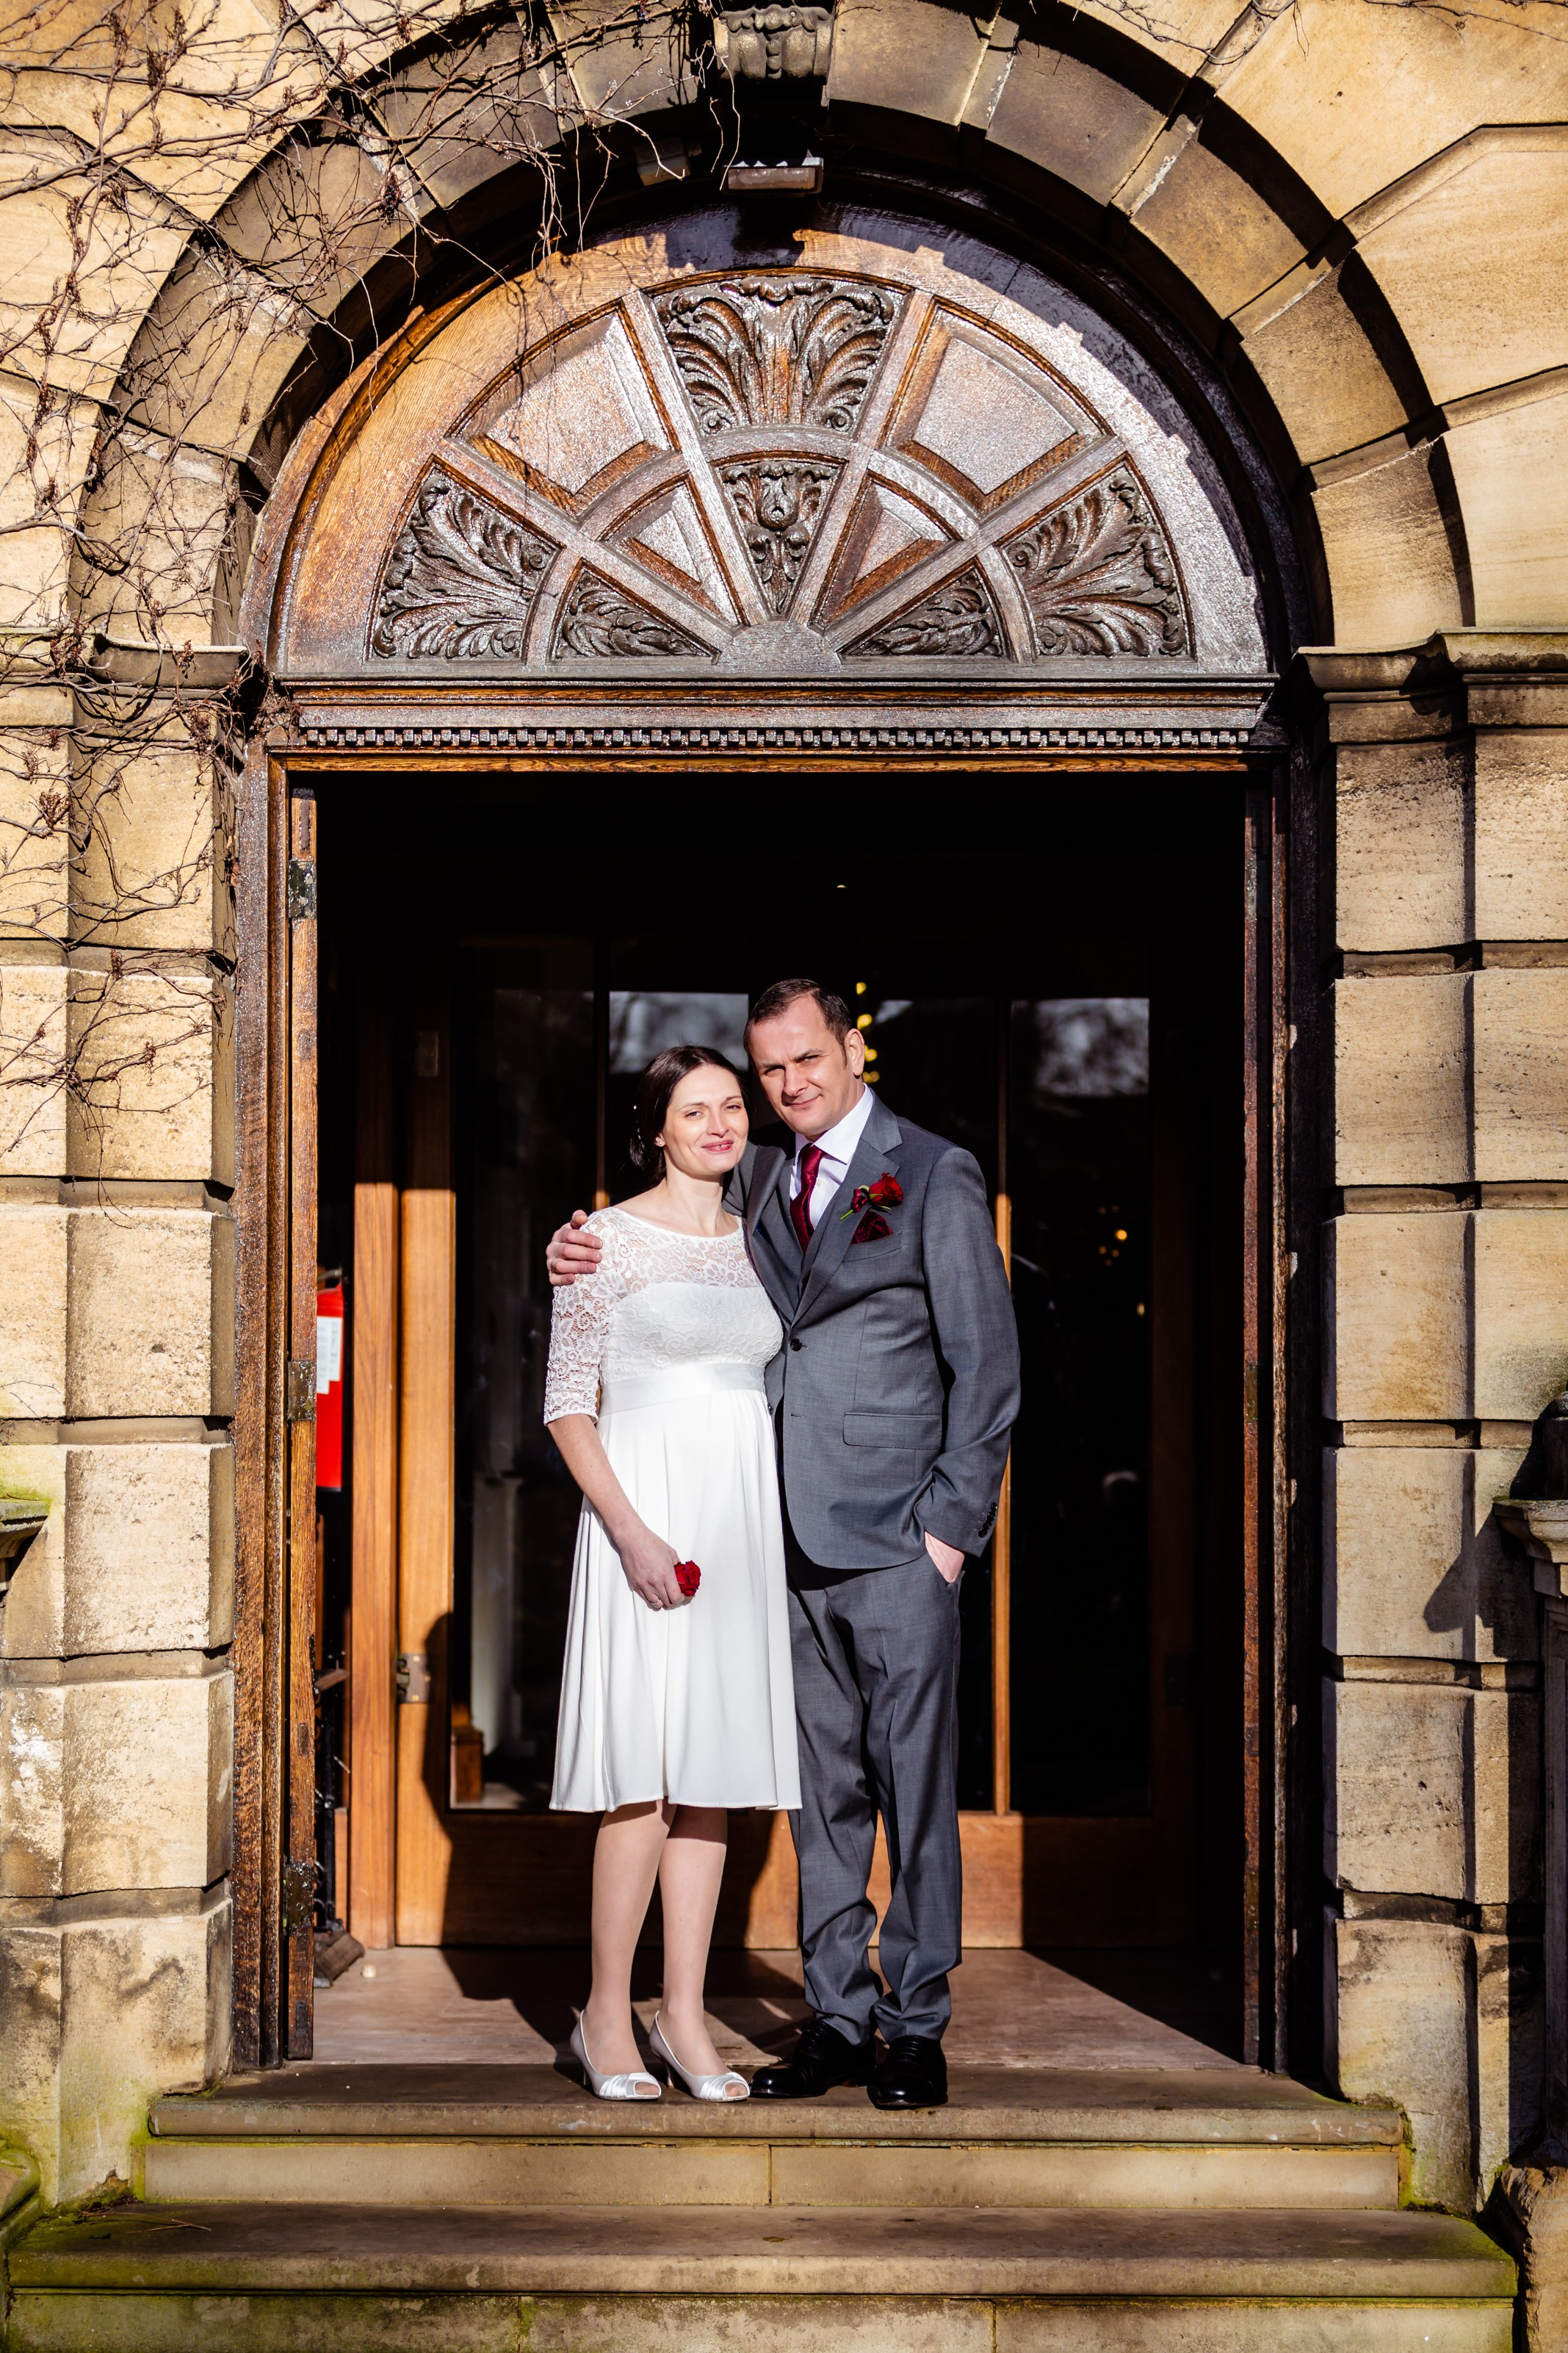 bride and groom, just married, mr & mrs, alfred east art gallery, kettering, fotovida wedding photography